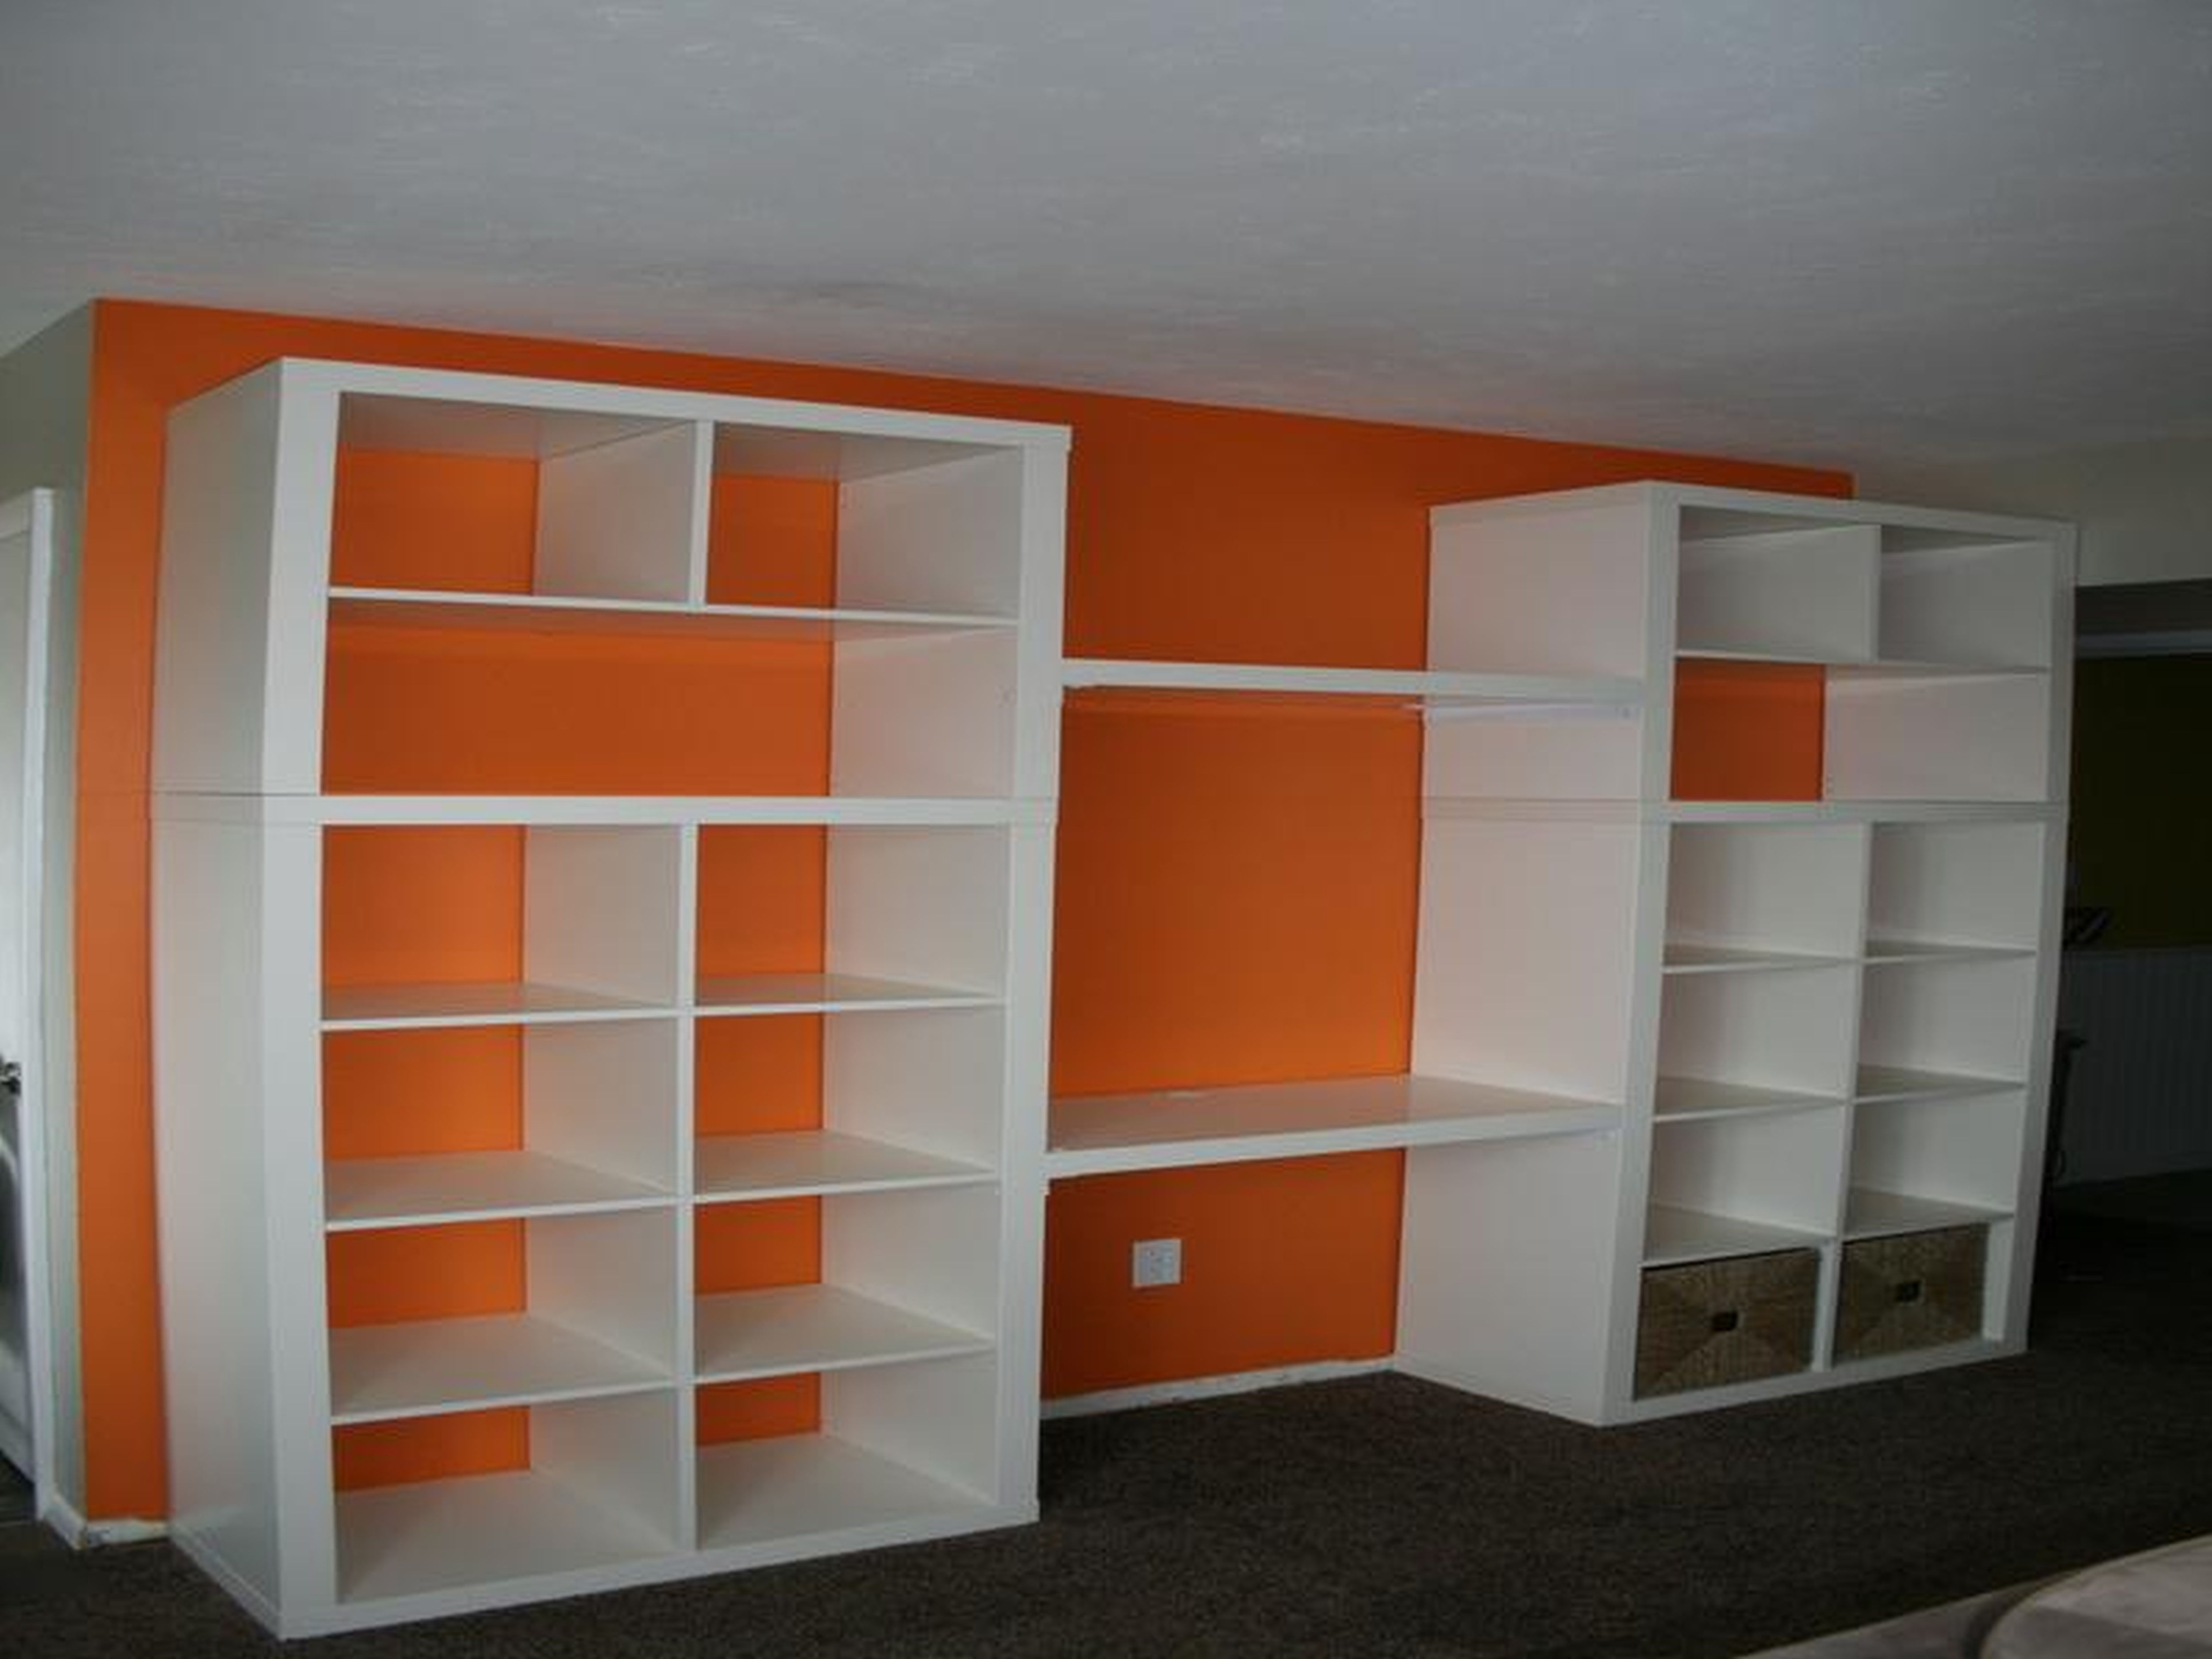 Ba Nursery Teen Room Storage Furniture Free Standing Wood Throughout Large Bookcase Plans (View 2 of 15)